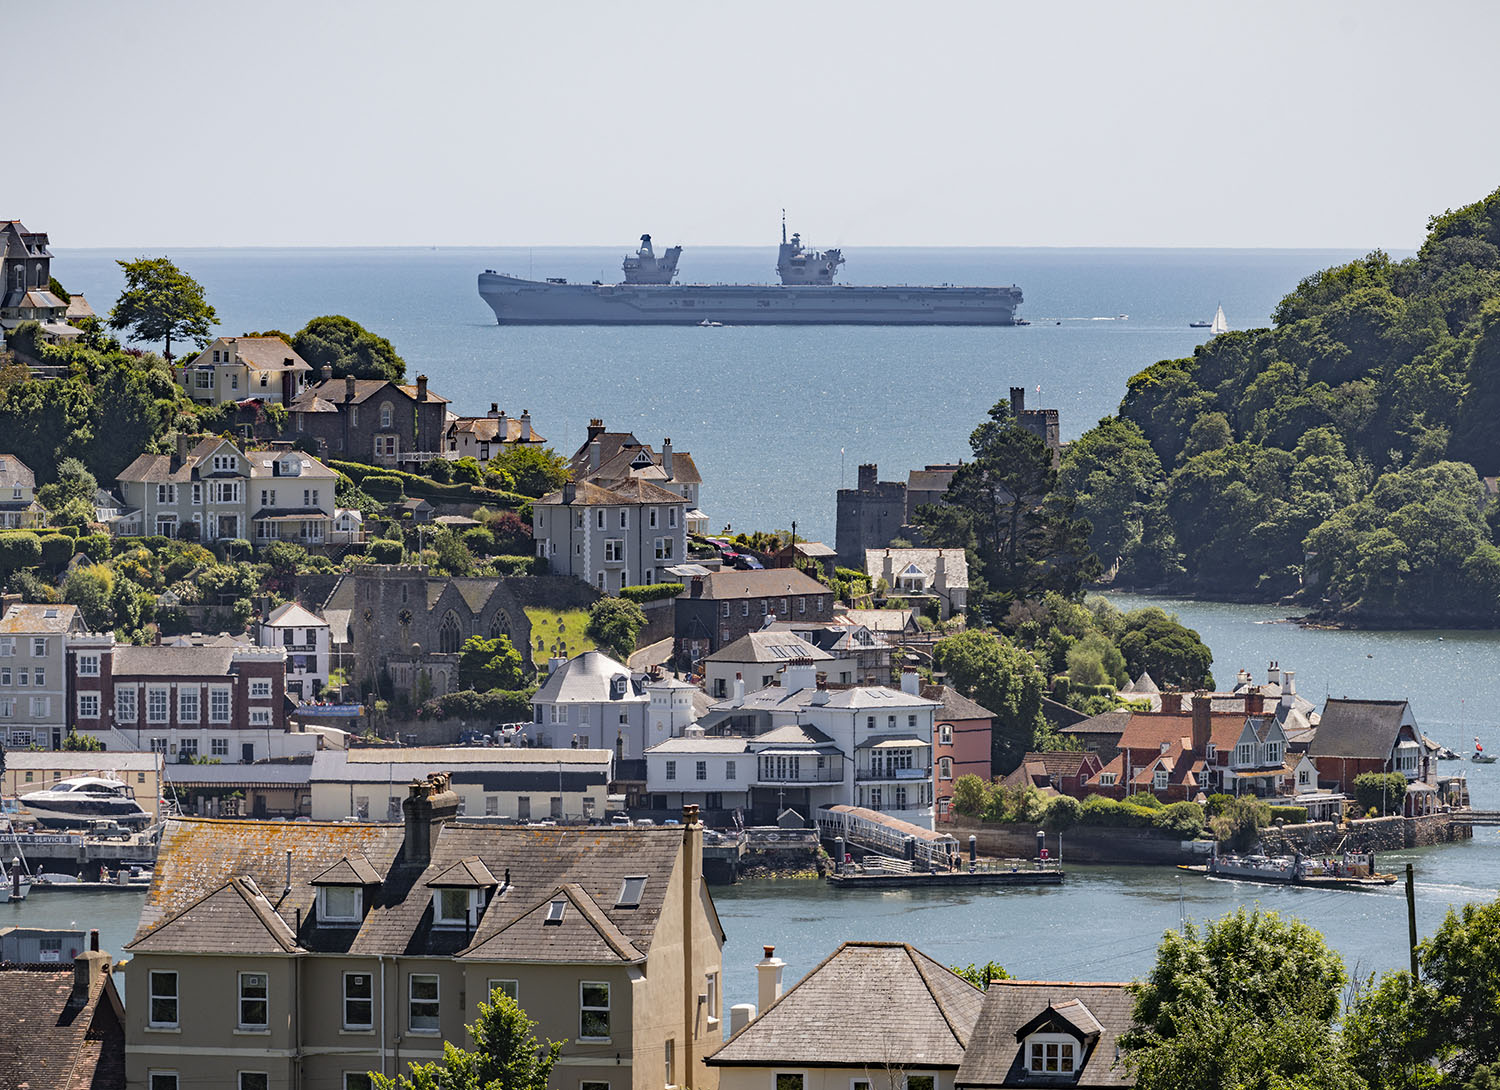 HMS Queen Elizabeth off Dartmouth